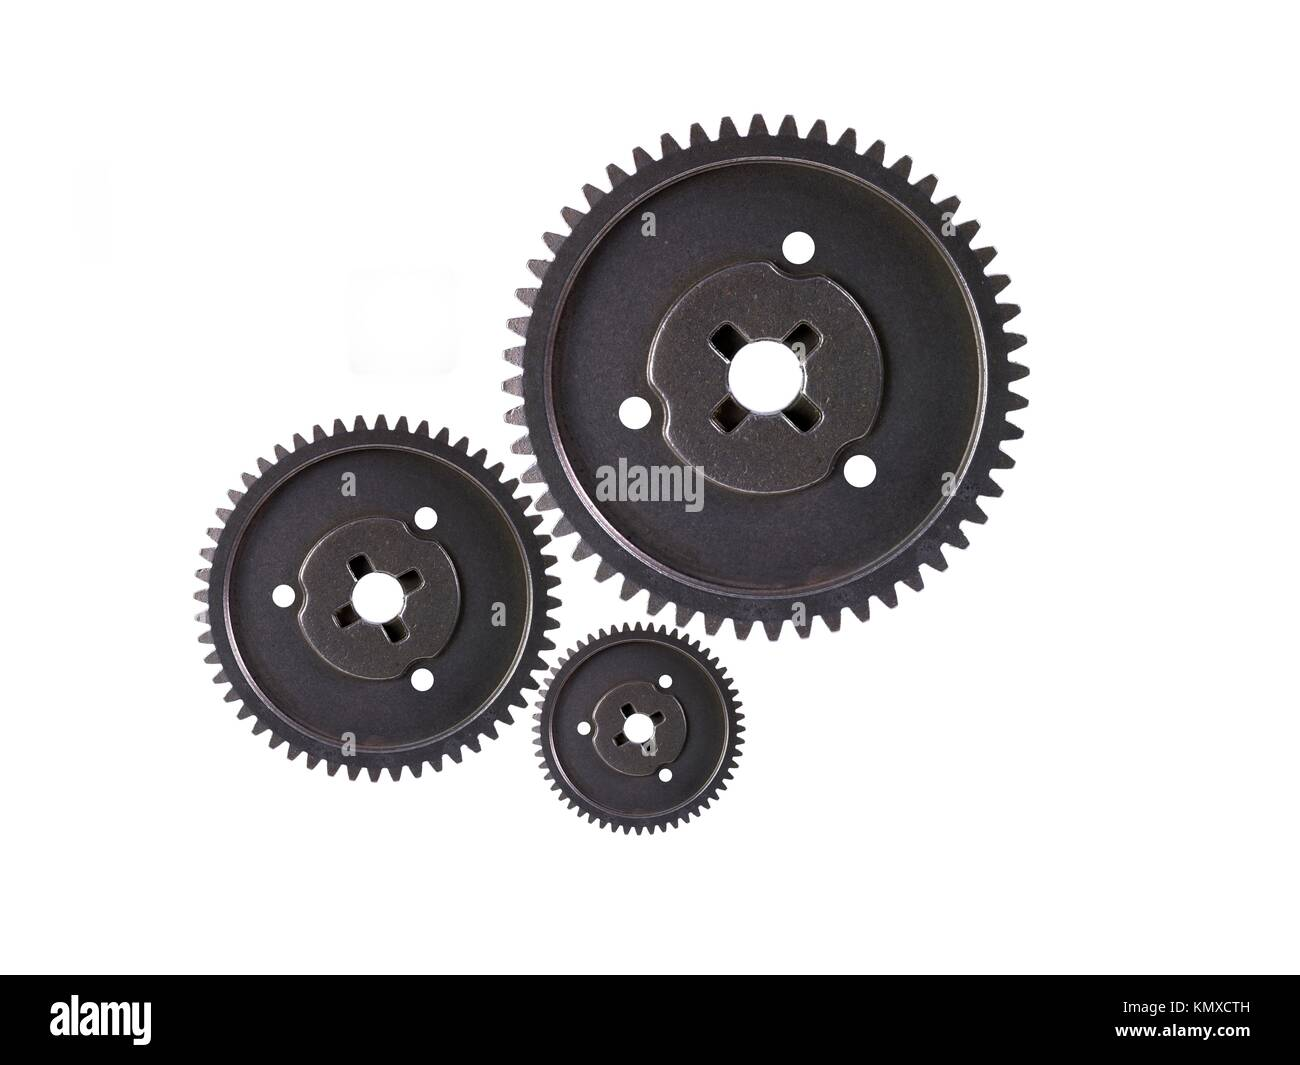 Metal gears isolated against a white background - Stock Image